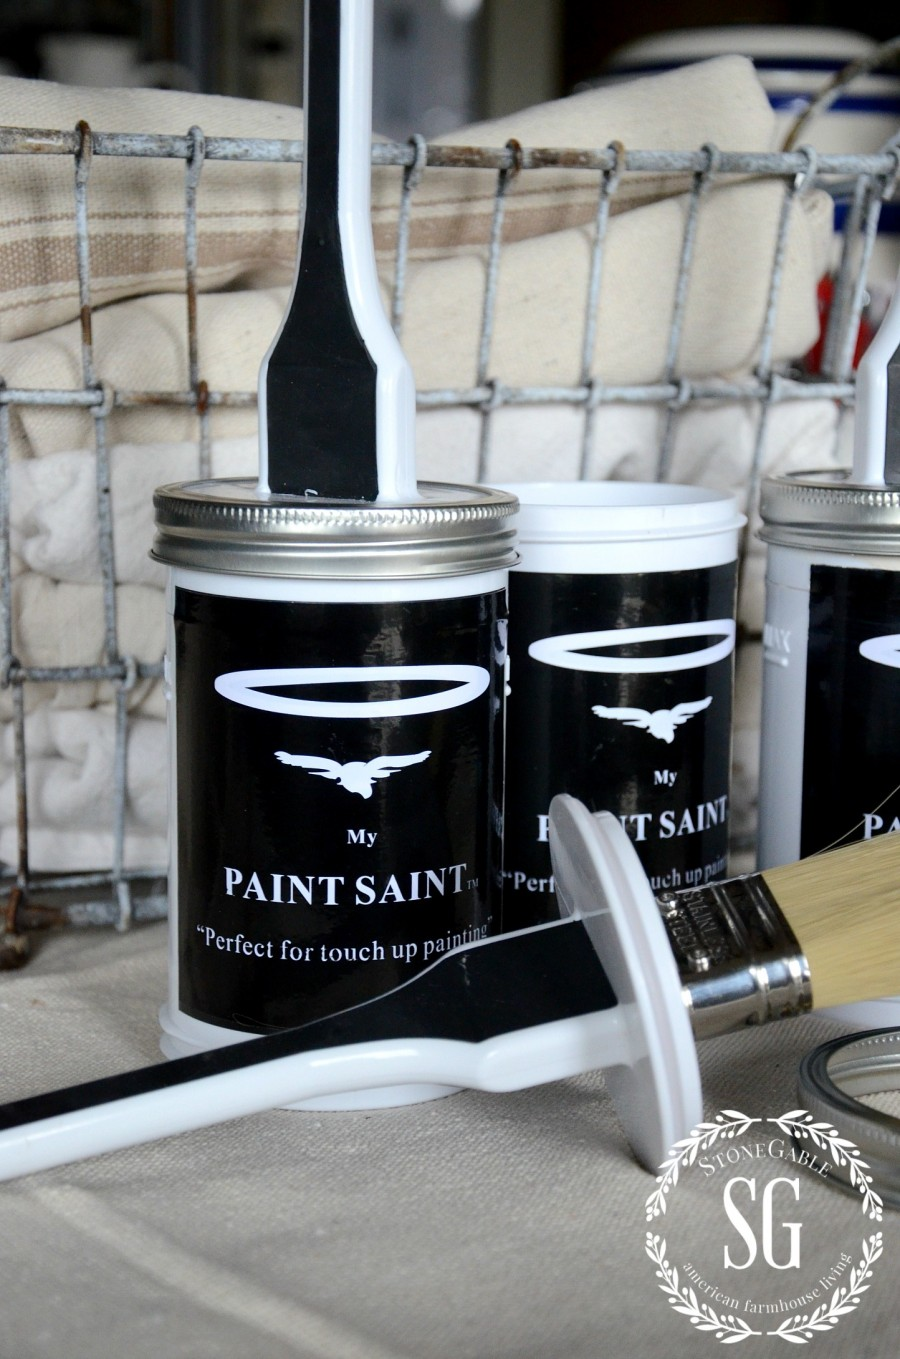 6 MUST HAVE THINGS TO PAINT A ROOM LIKE A PRO-My Paint Saint container-stonegableblog.com